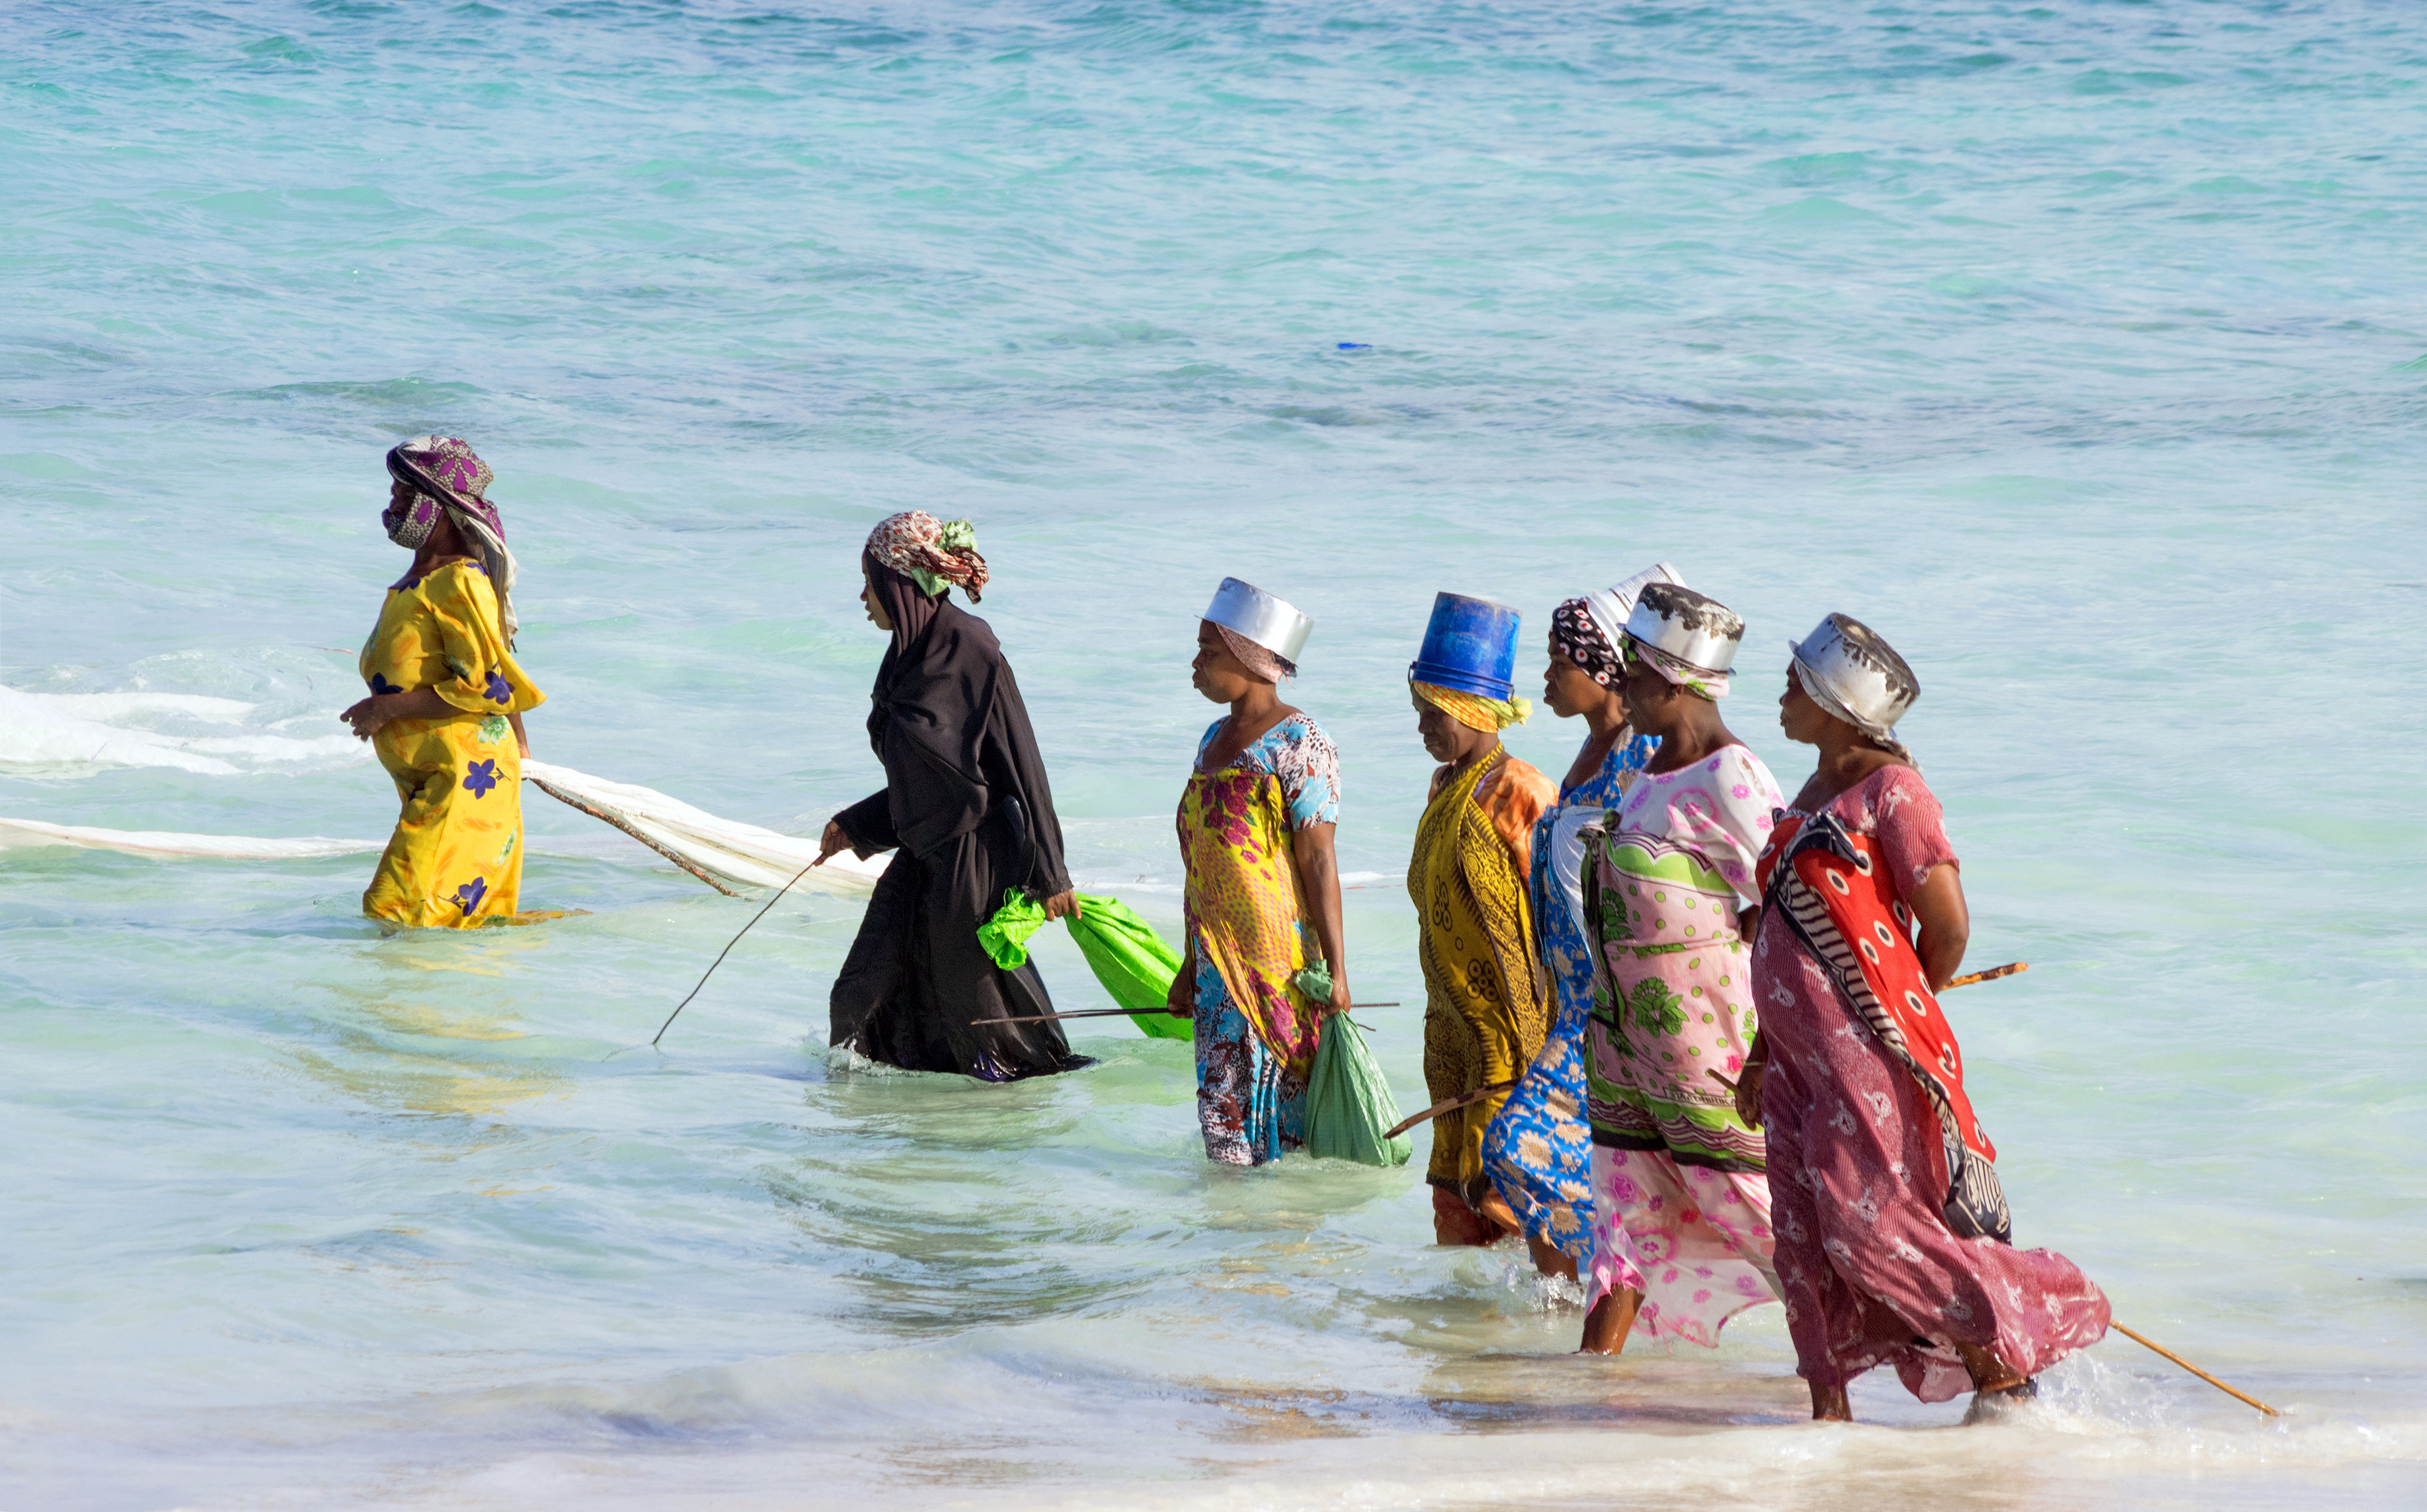 Zanzibar, Tanzania. Women from a fishing village are catching small fish off the coast of the ocean.